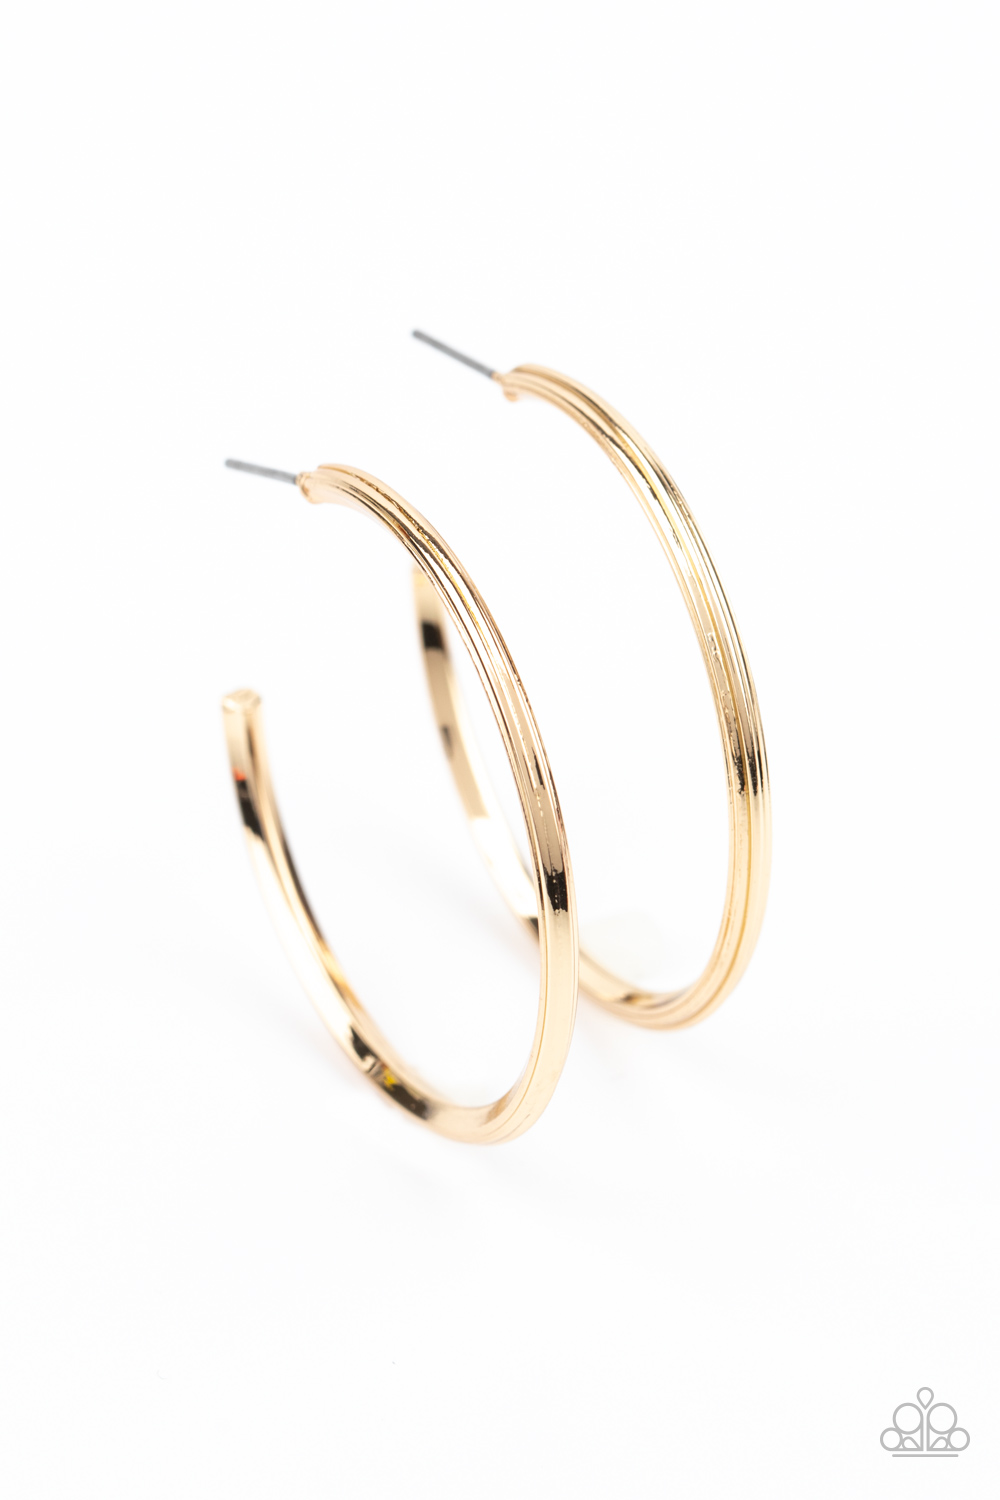 Paparazzi Accessories:  Chic As Can Be - Gold (723)